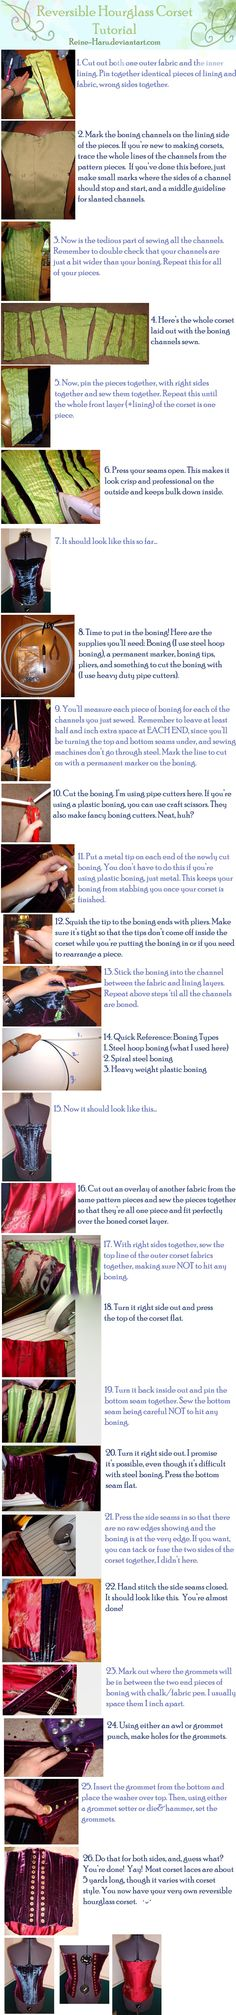 Reversible Corset Tutorial by ~Reine-Haru on deviantART  While corsets were not common fashion in early Tudor period, a few pieces have been documented in that period.  If you want a nice one that's reversible, this is a good tutorial  #sca #garb #corset